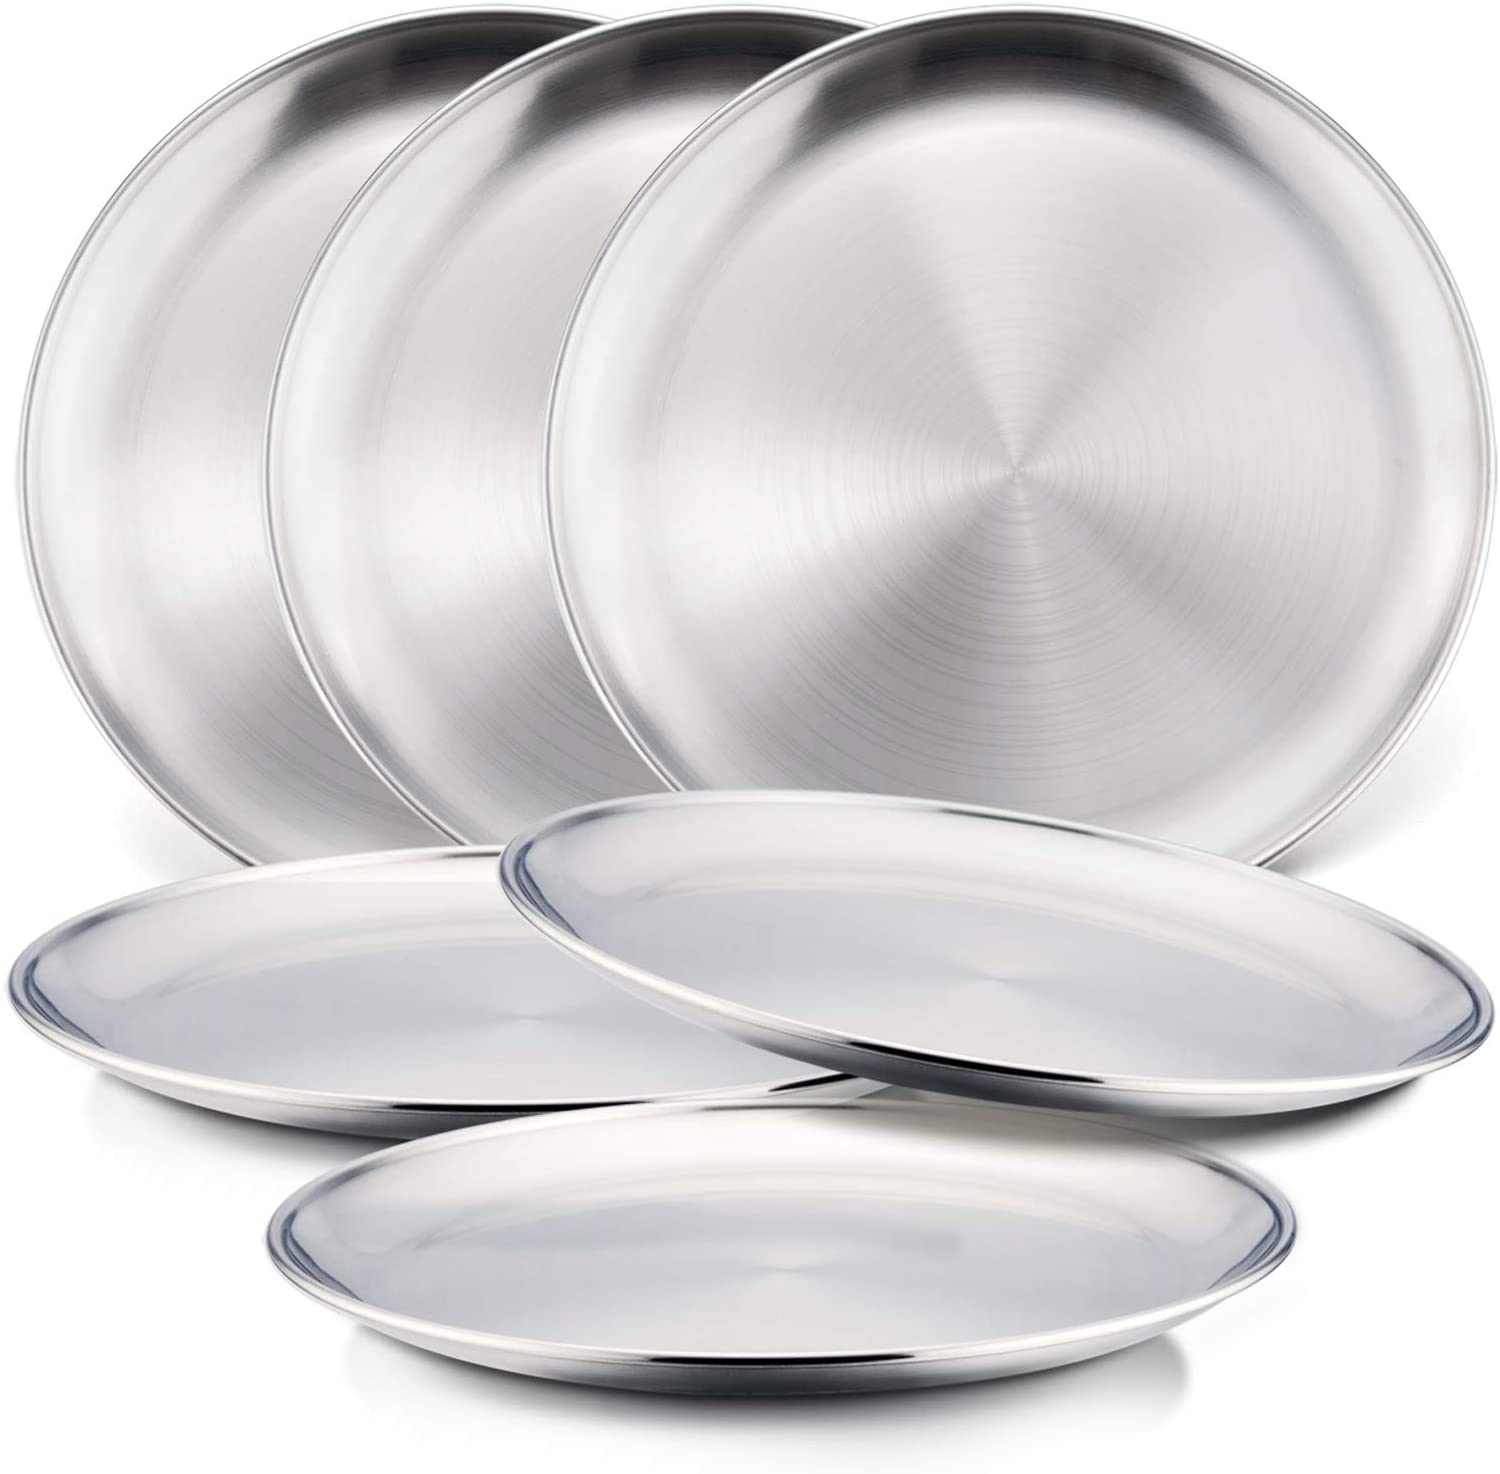 304 Stainless Steel Plates & Cups,E-far 8-inch Metal Dinner Plates